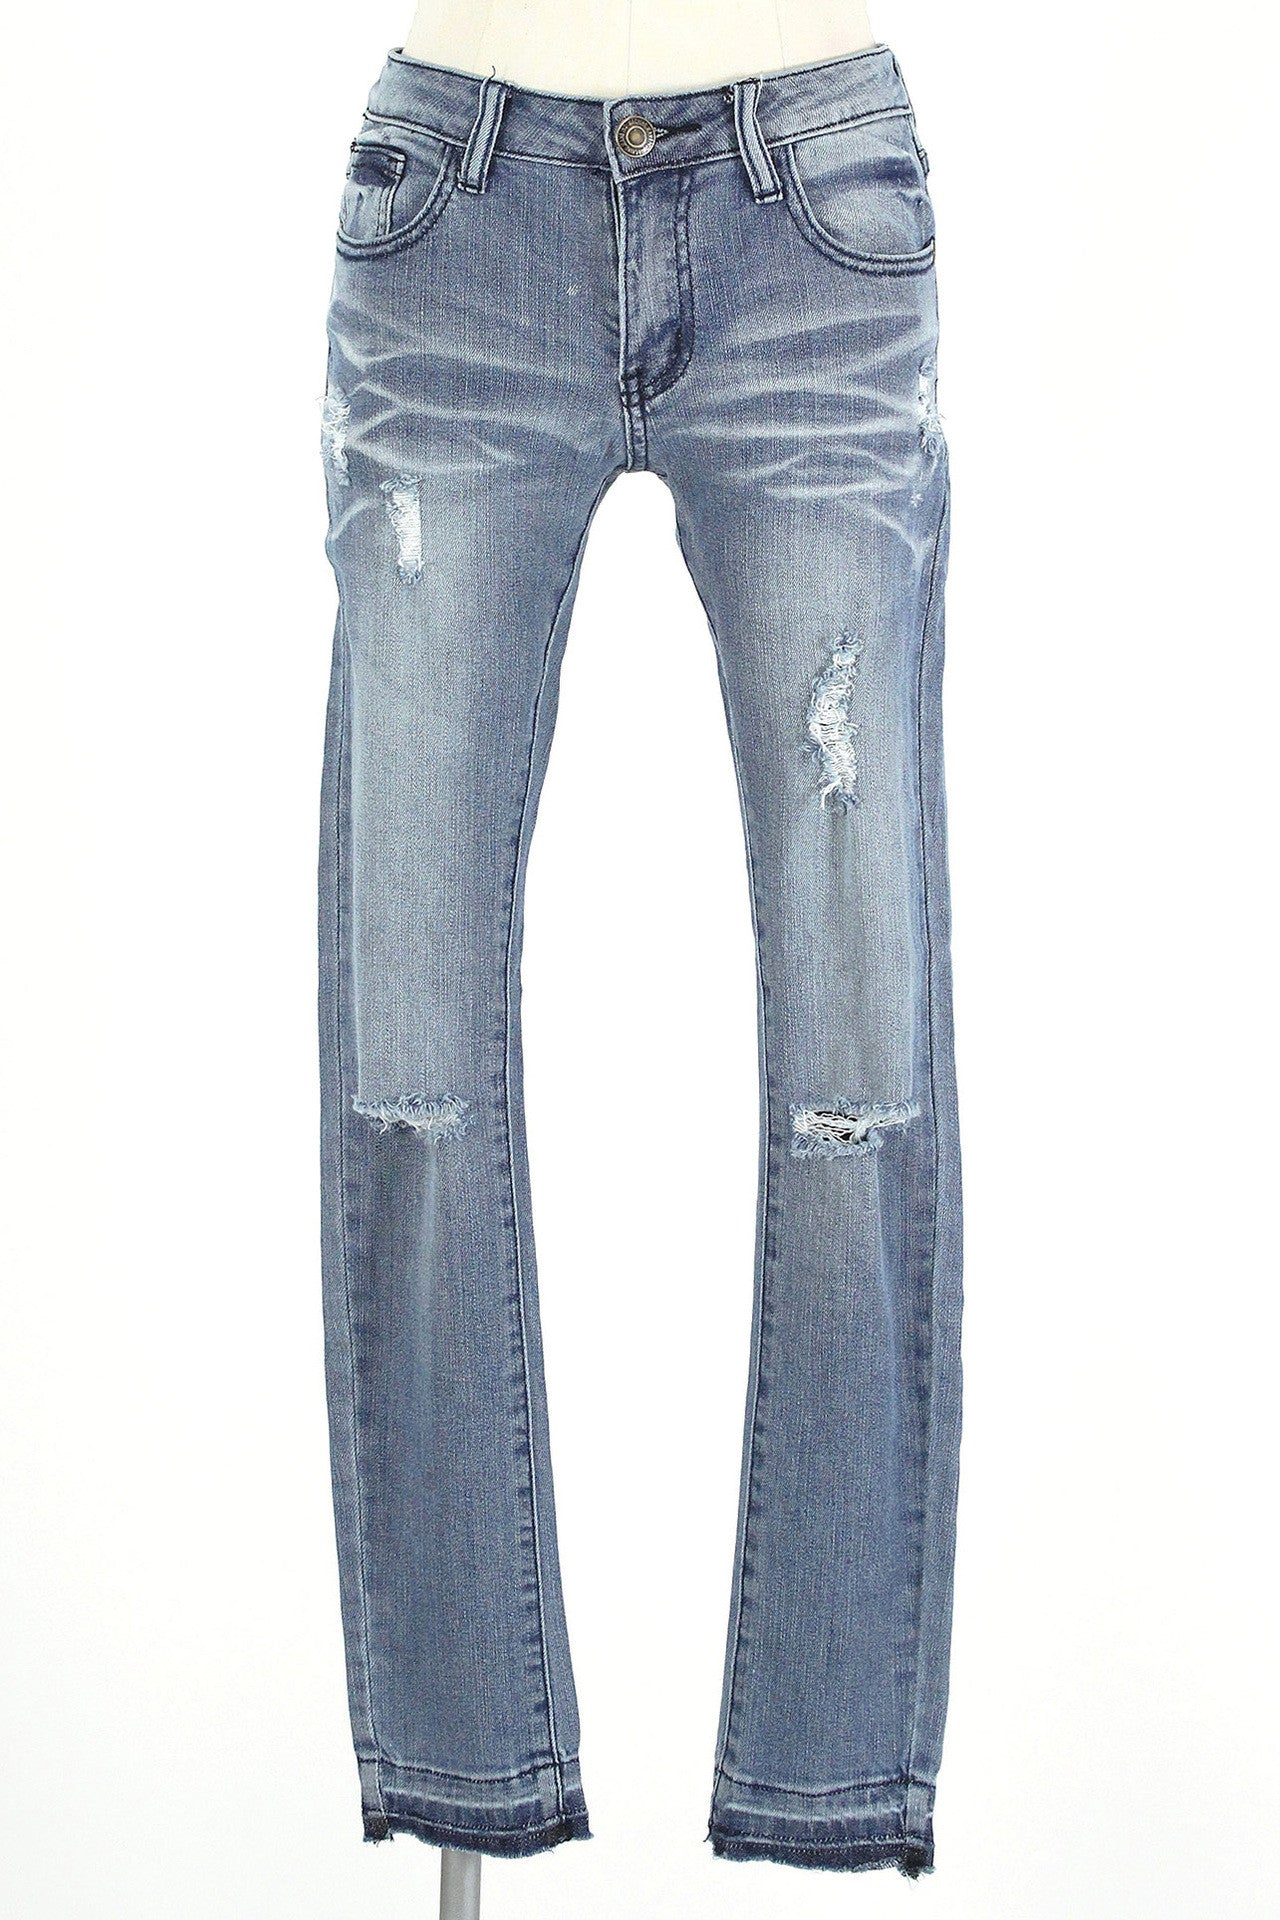 Slit Knee Released Hem Ankle Jean / Medium Wash